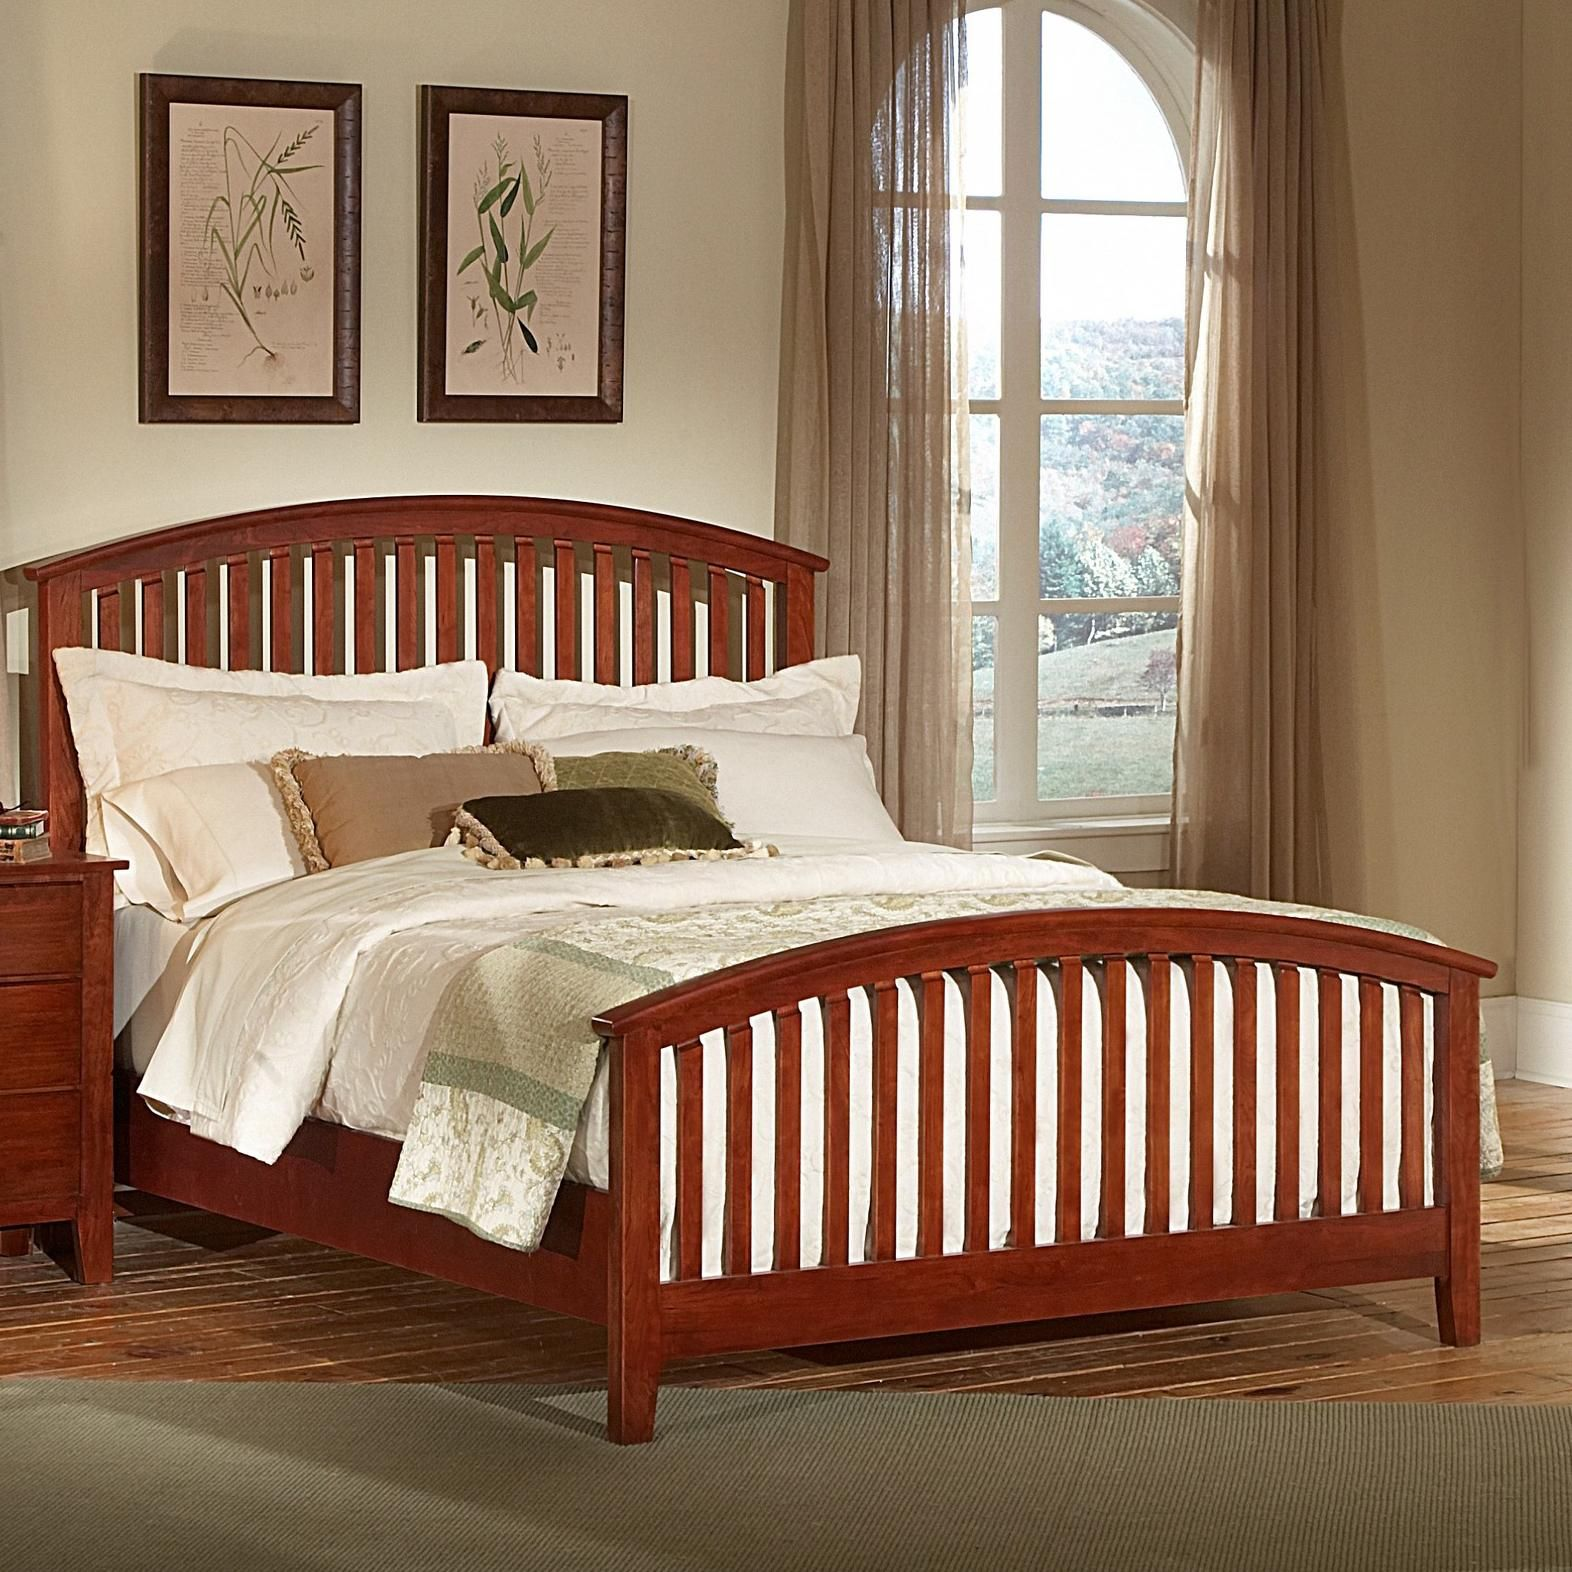 Best Appalachian Hardwood Simply Cherry King Arched Slat Bed 640 x 480